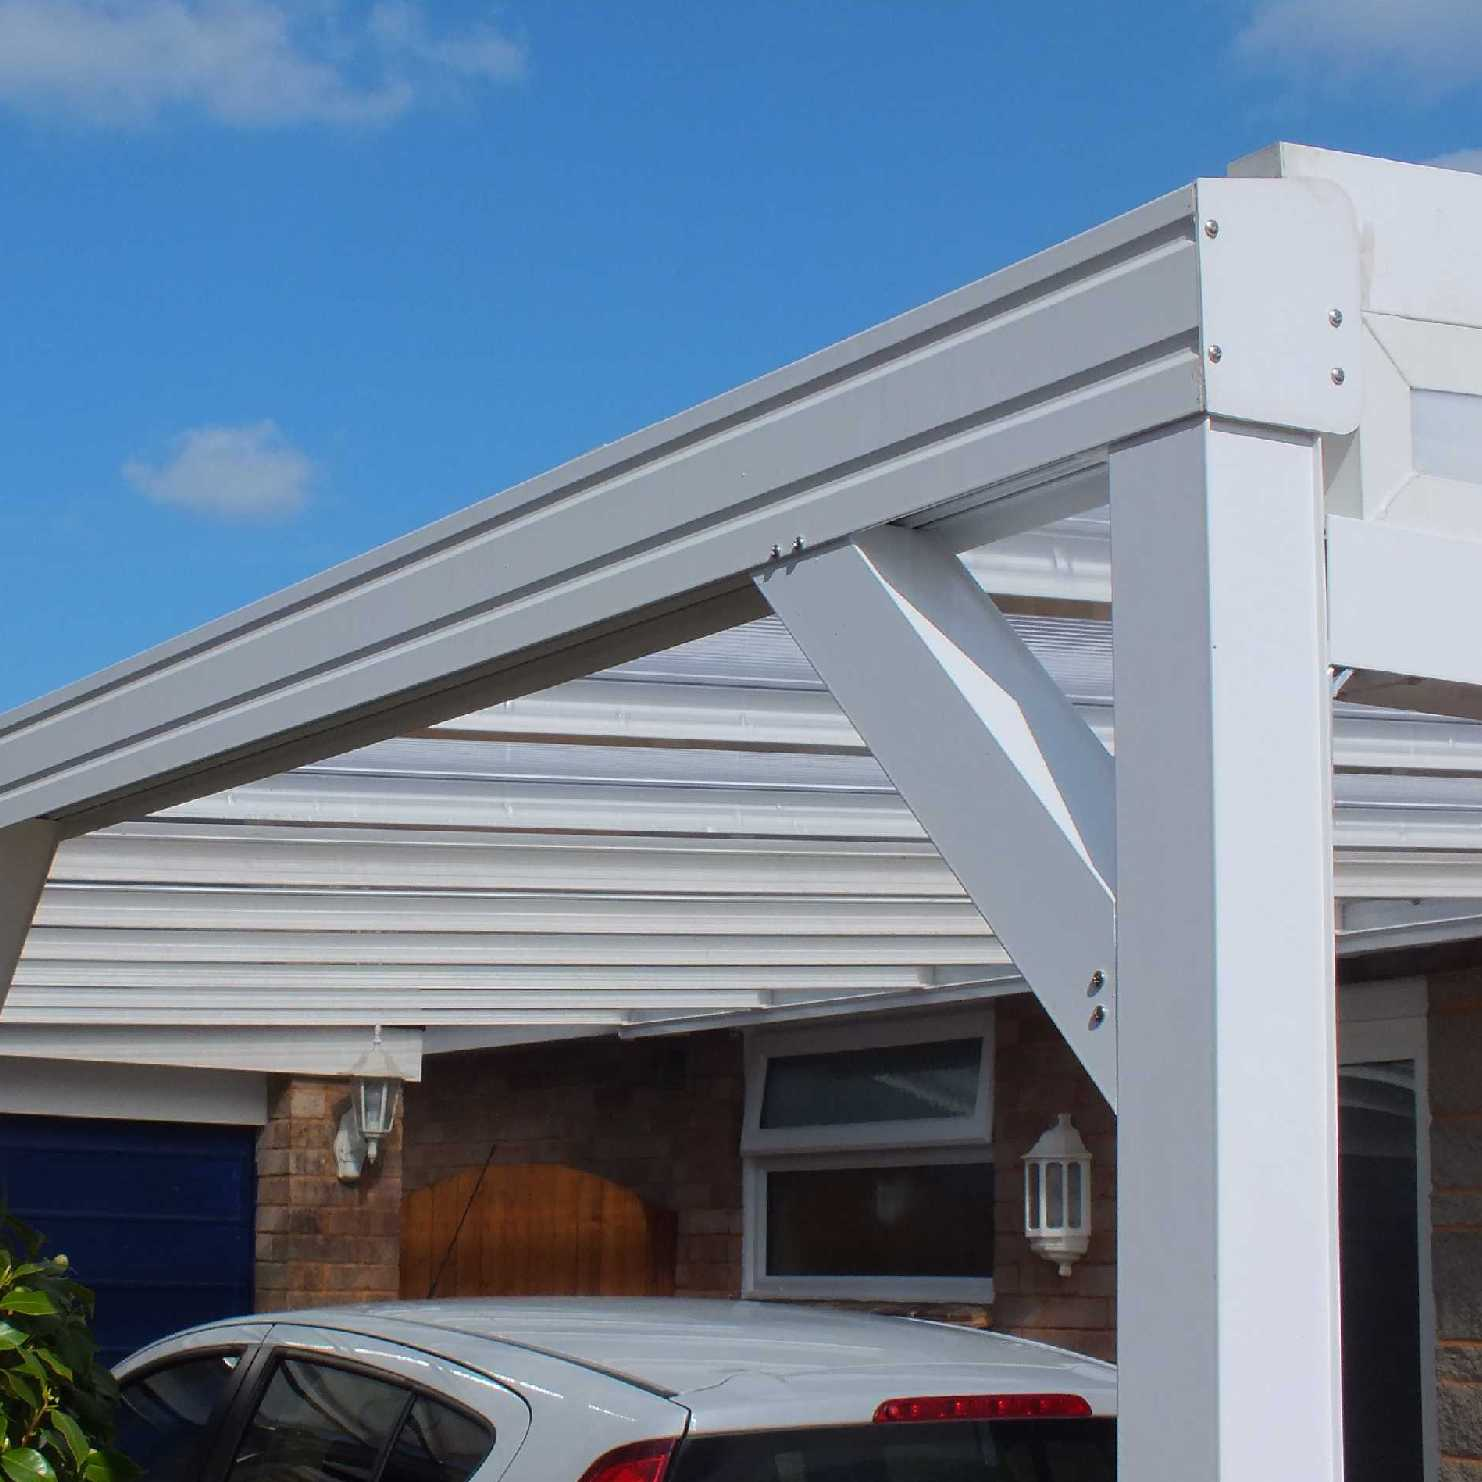 Great deals on Omega Smart Lean-To Canopy with 16mm Polycarbonate Glazing - 12.0m (W) x 3.5m (P), (5) Supporting Posts